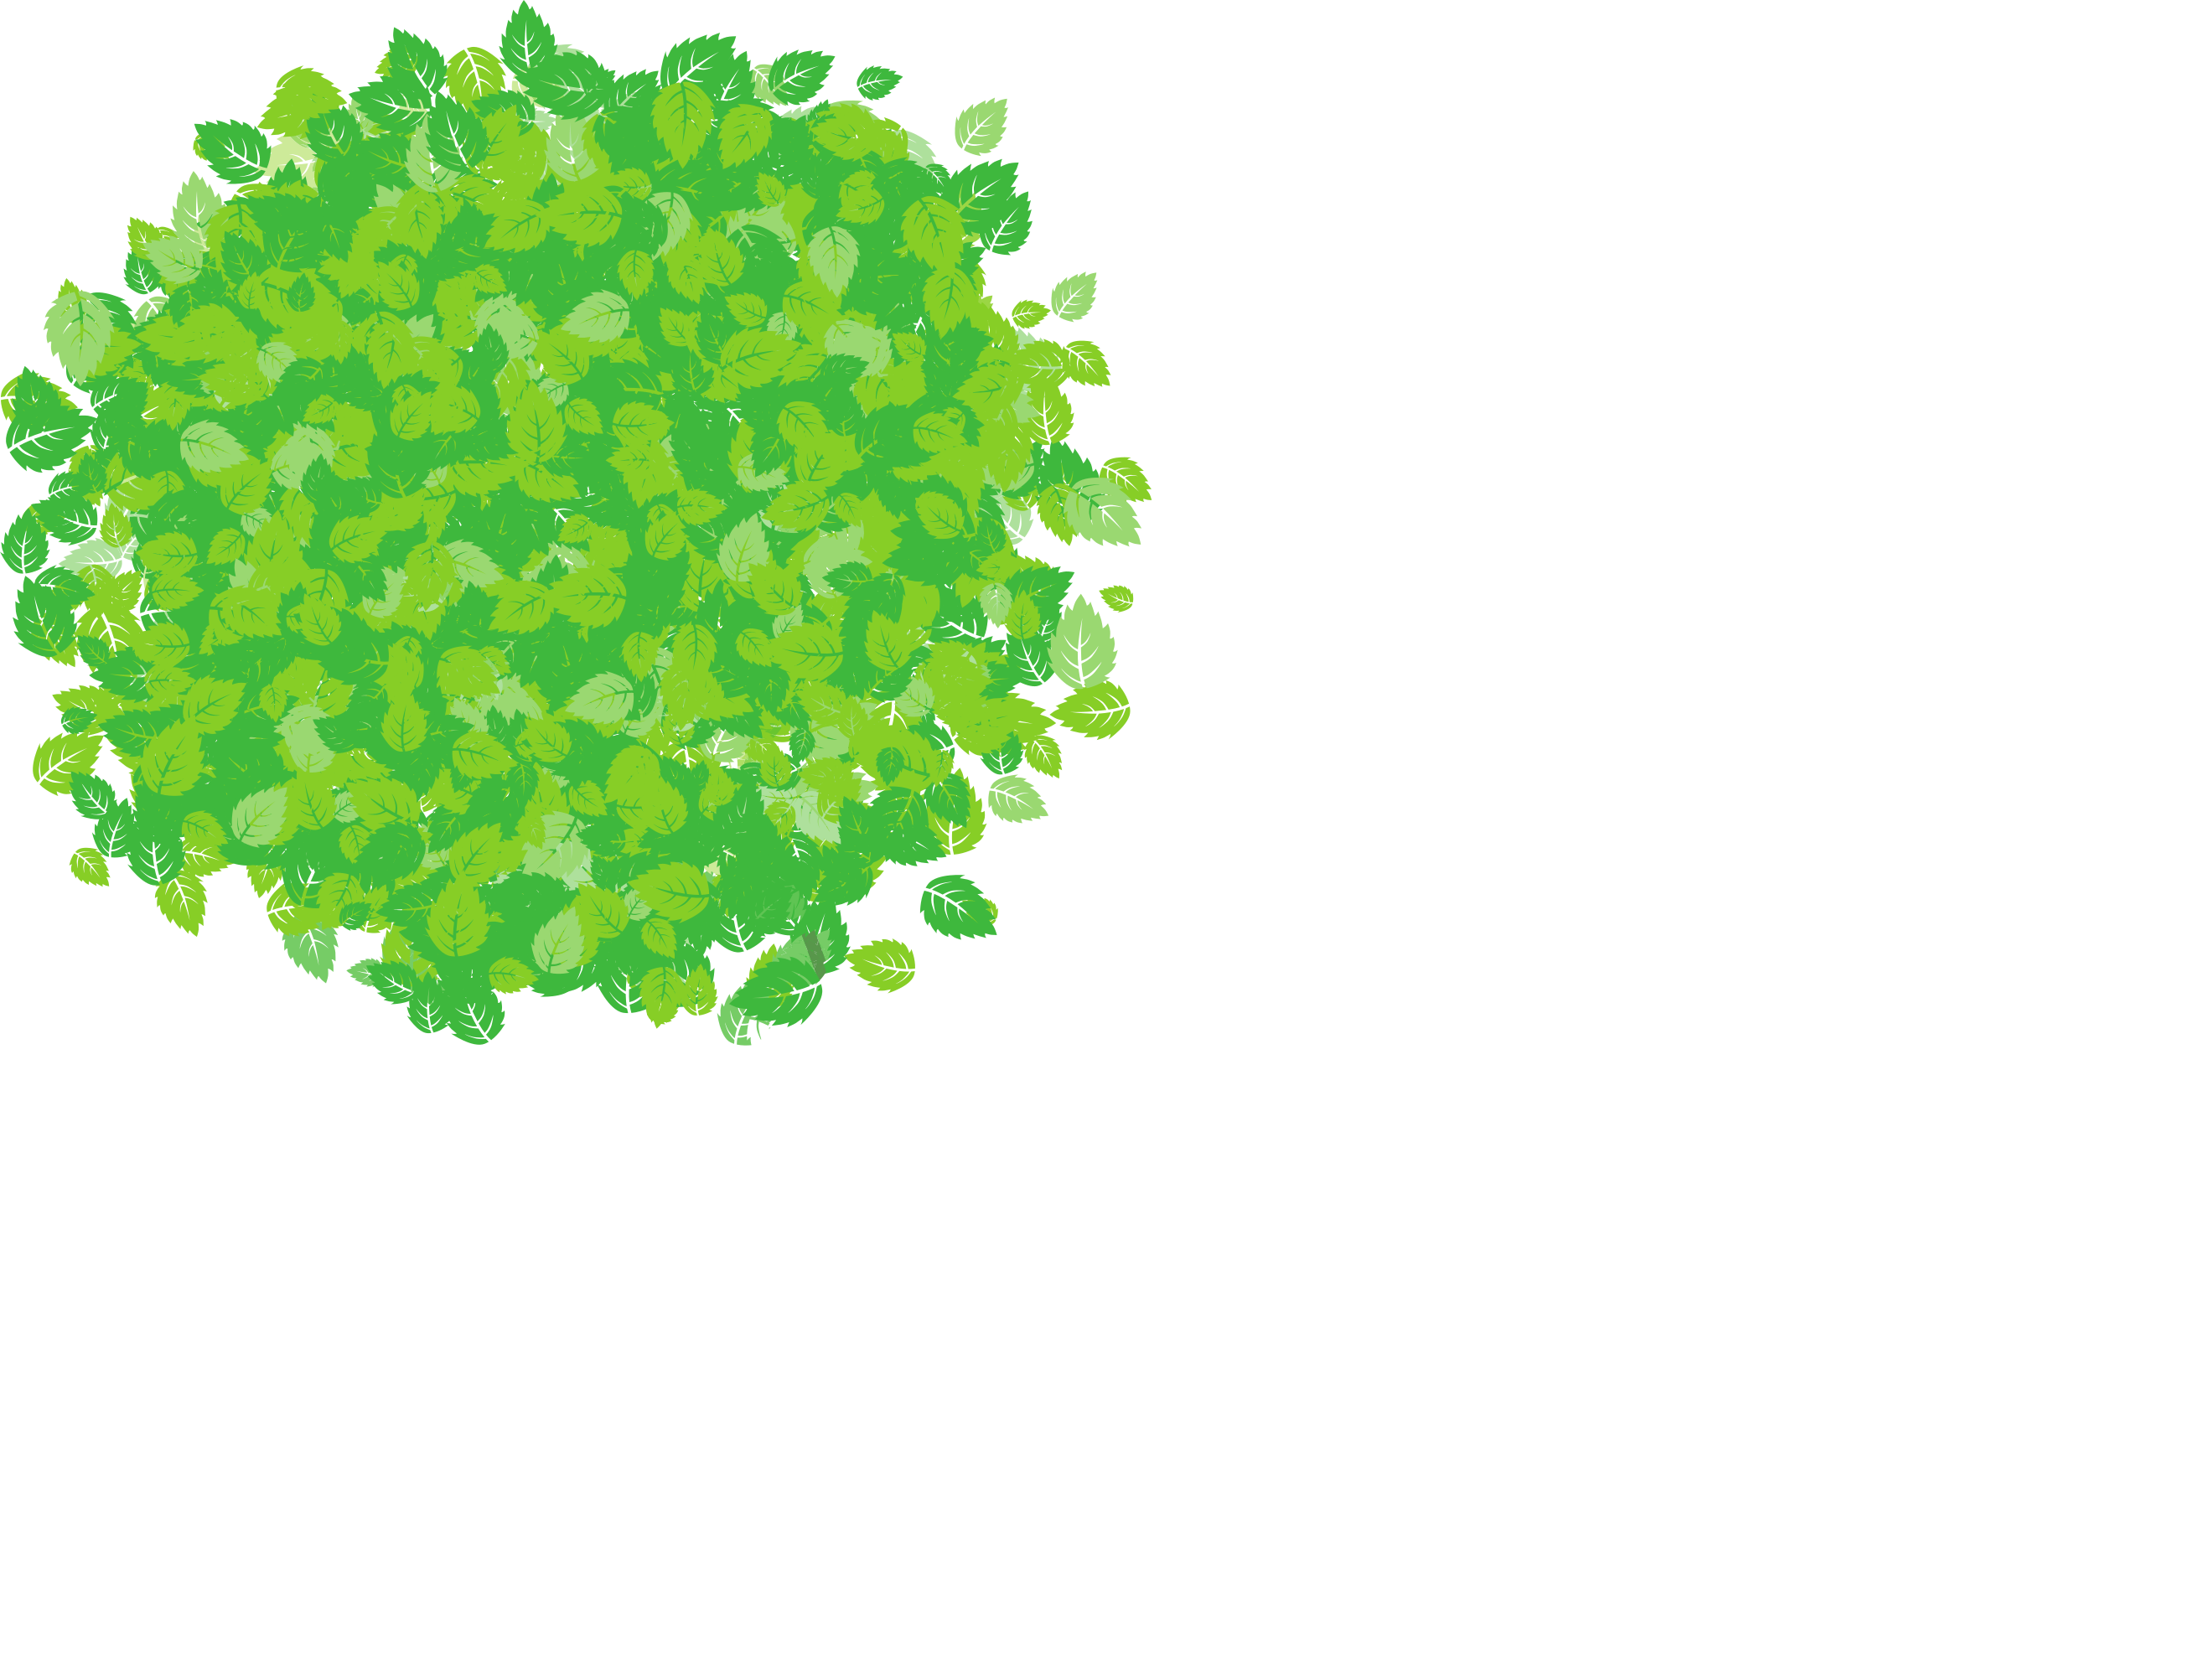 Buscott Woodworking Ltd